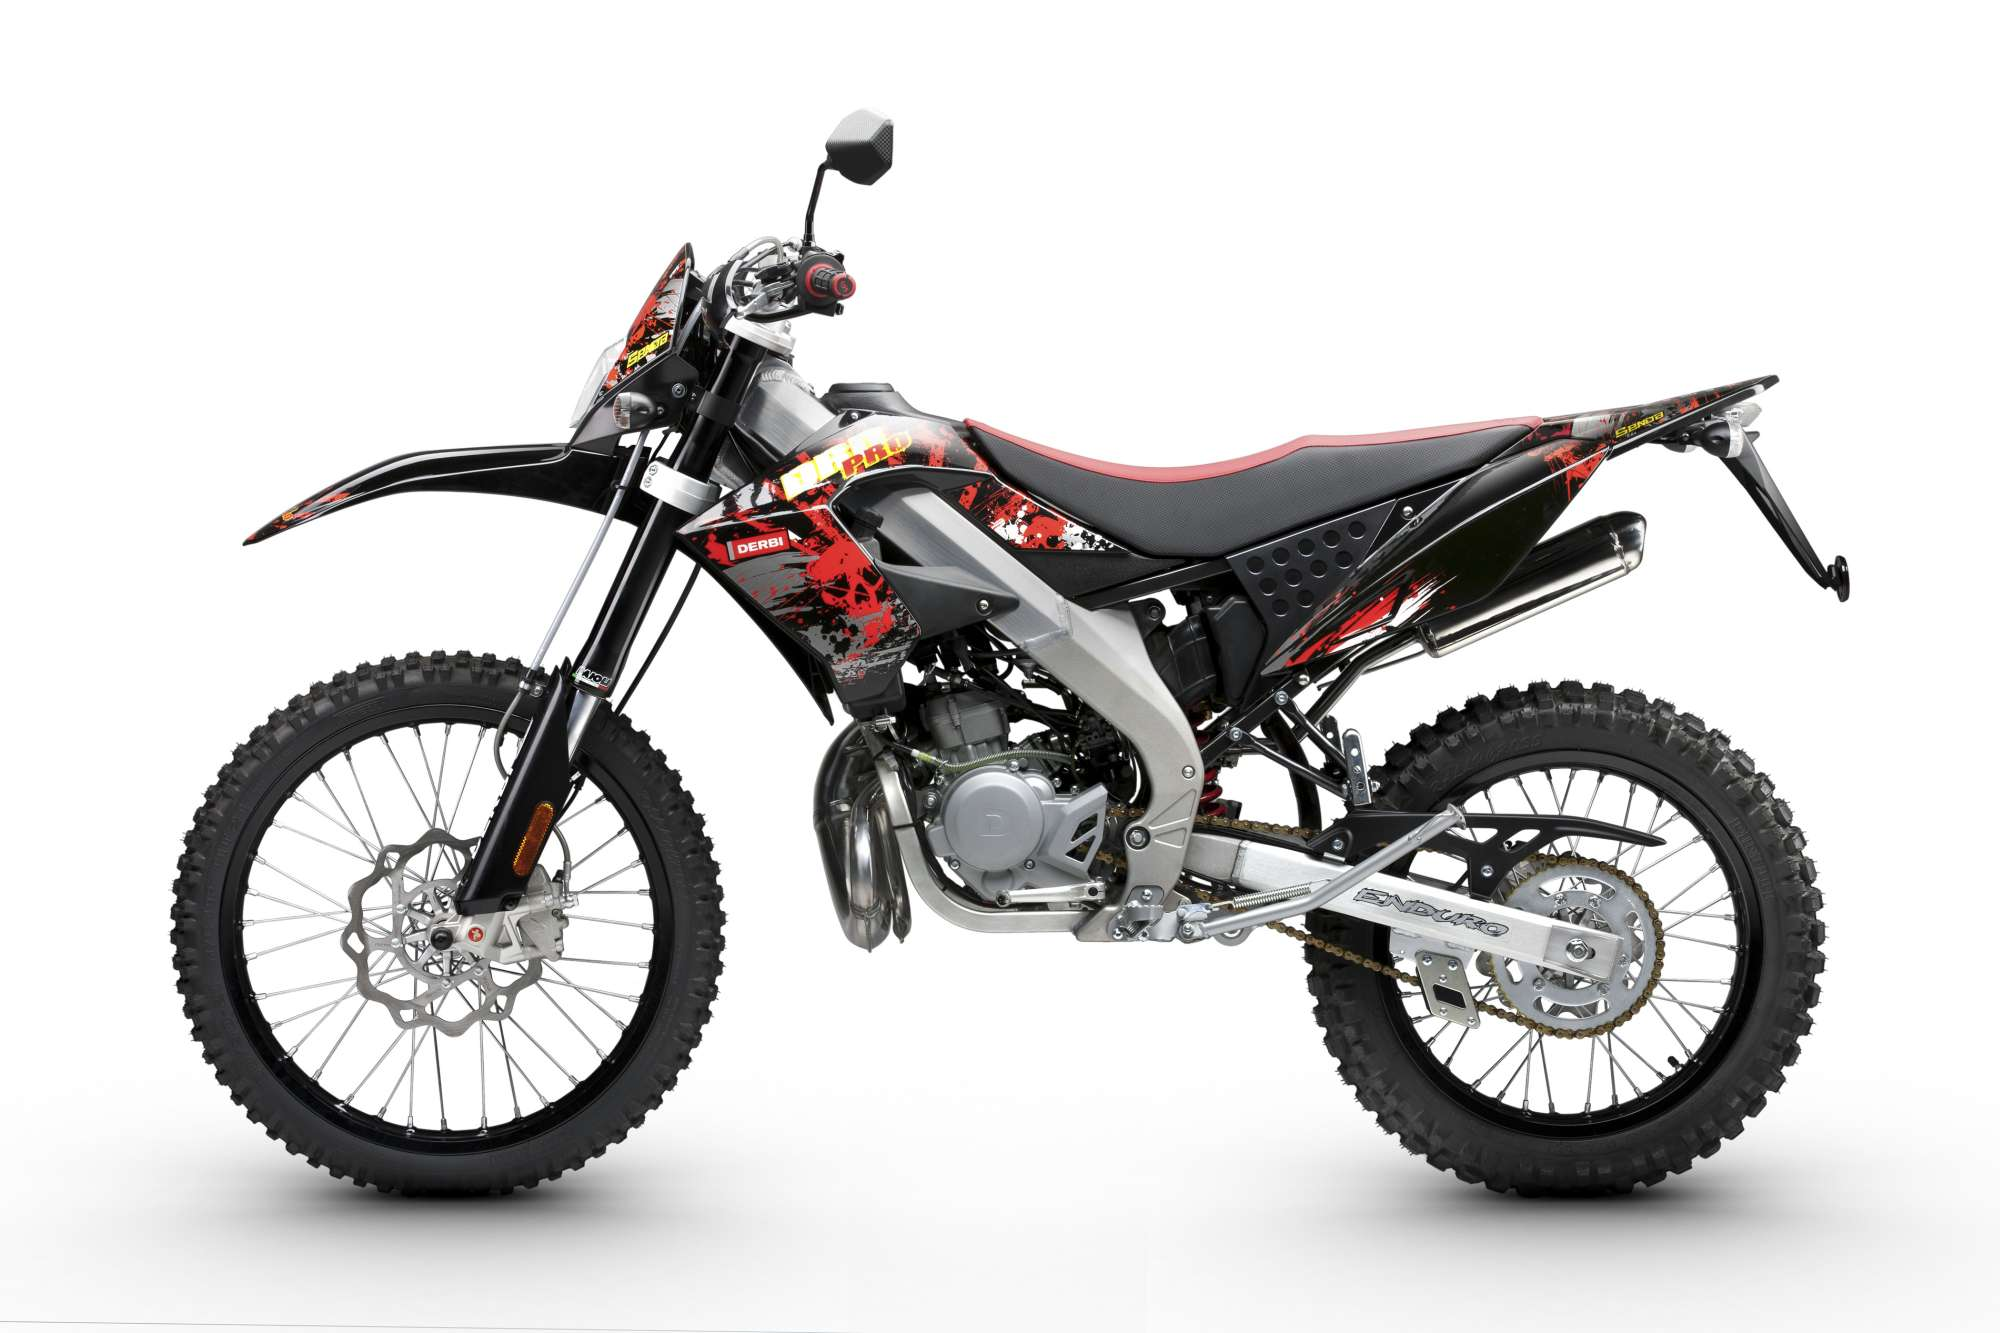 Derbi senda drd pro 50 r all technical data of the model for Garage peugeot midena pierrelatte